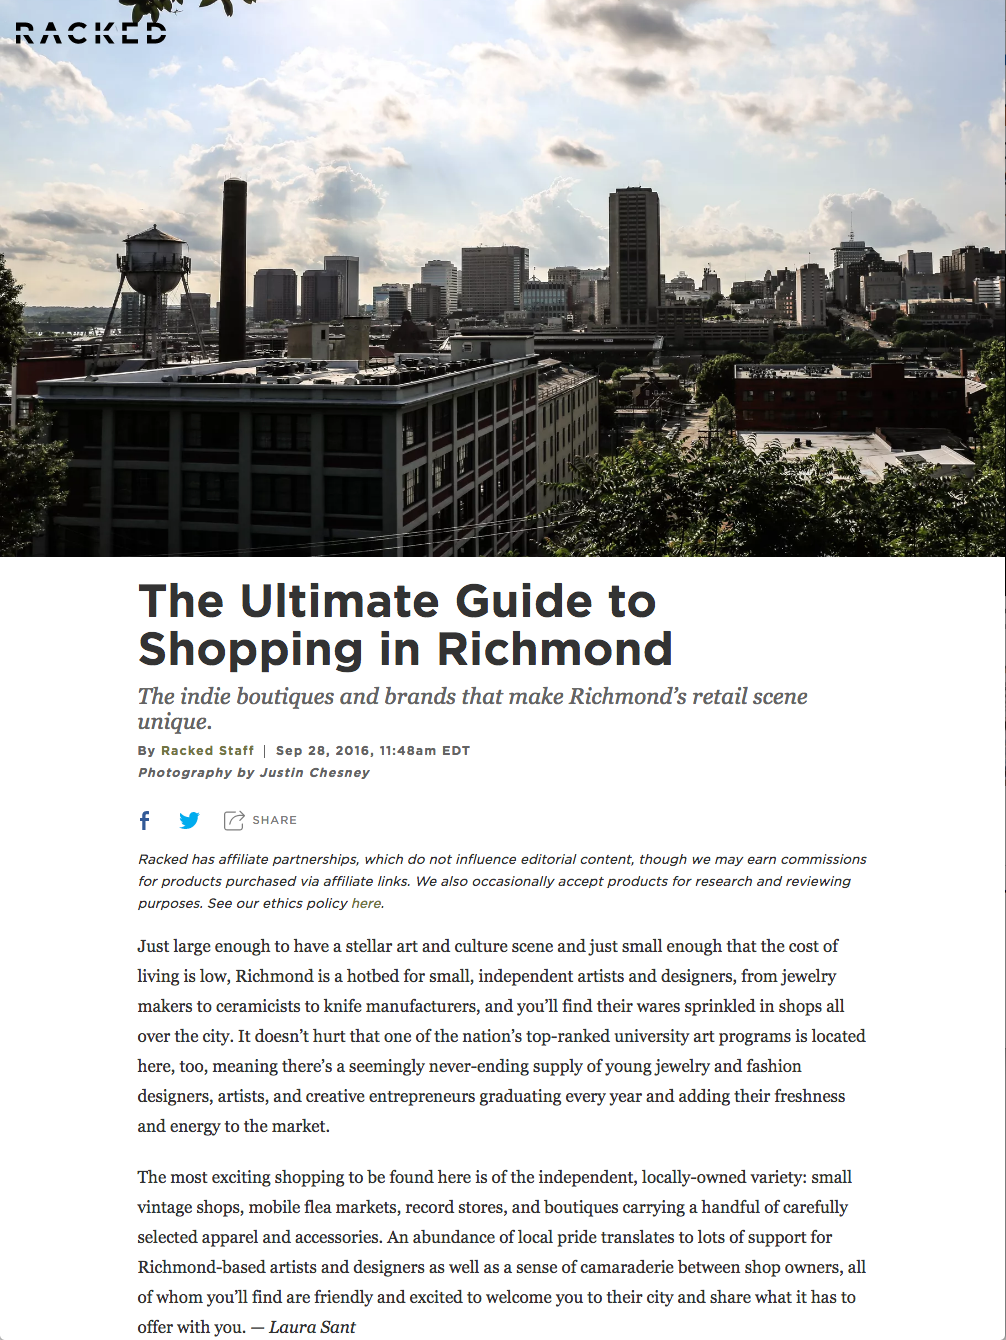 The_Ultimate_Guide_to_Shopping_in_Richmond_-_ RACKED SEPT 2016.png